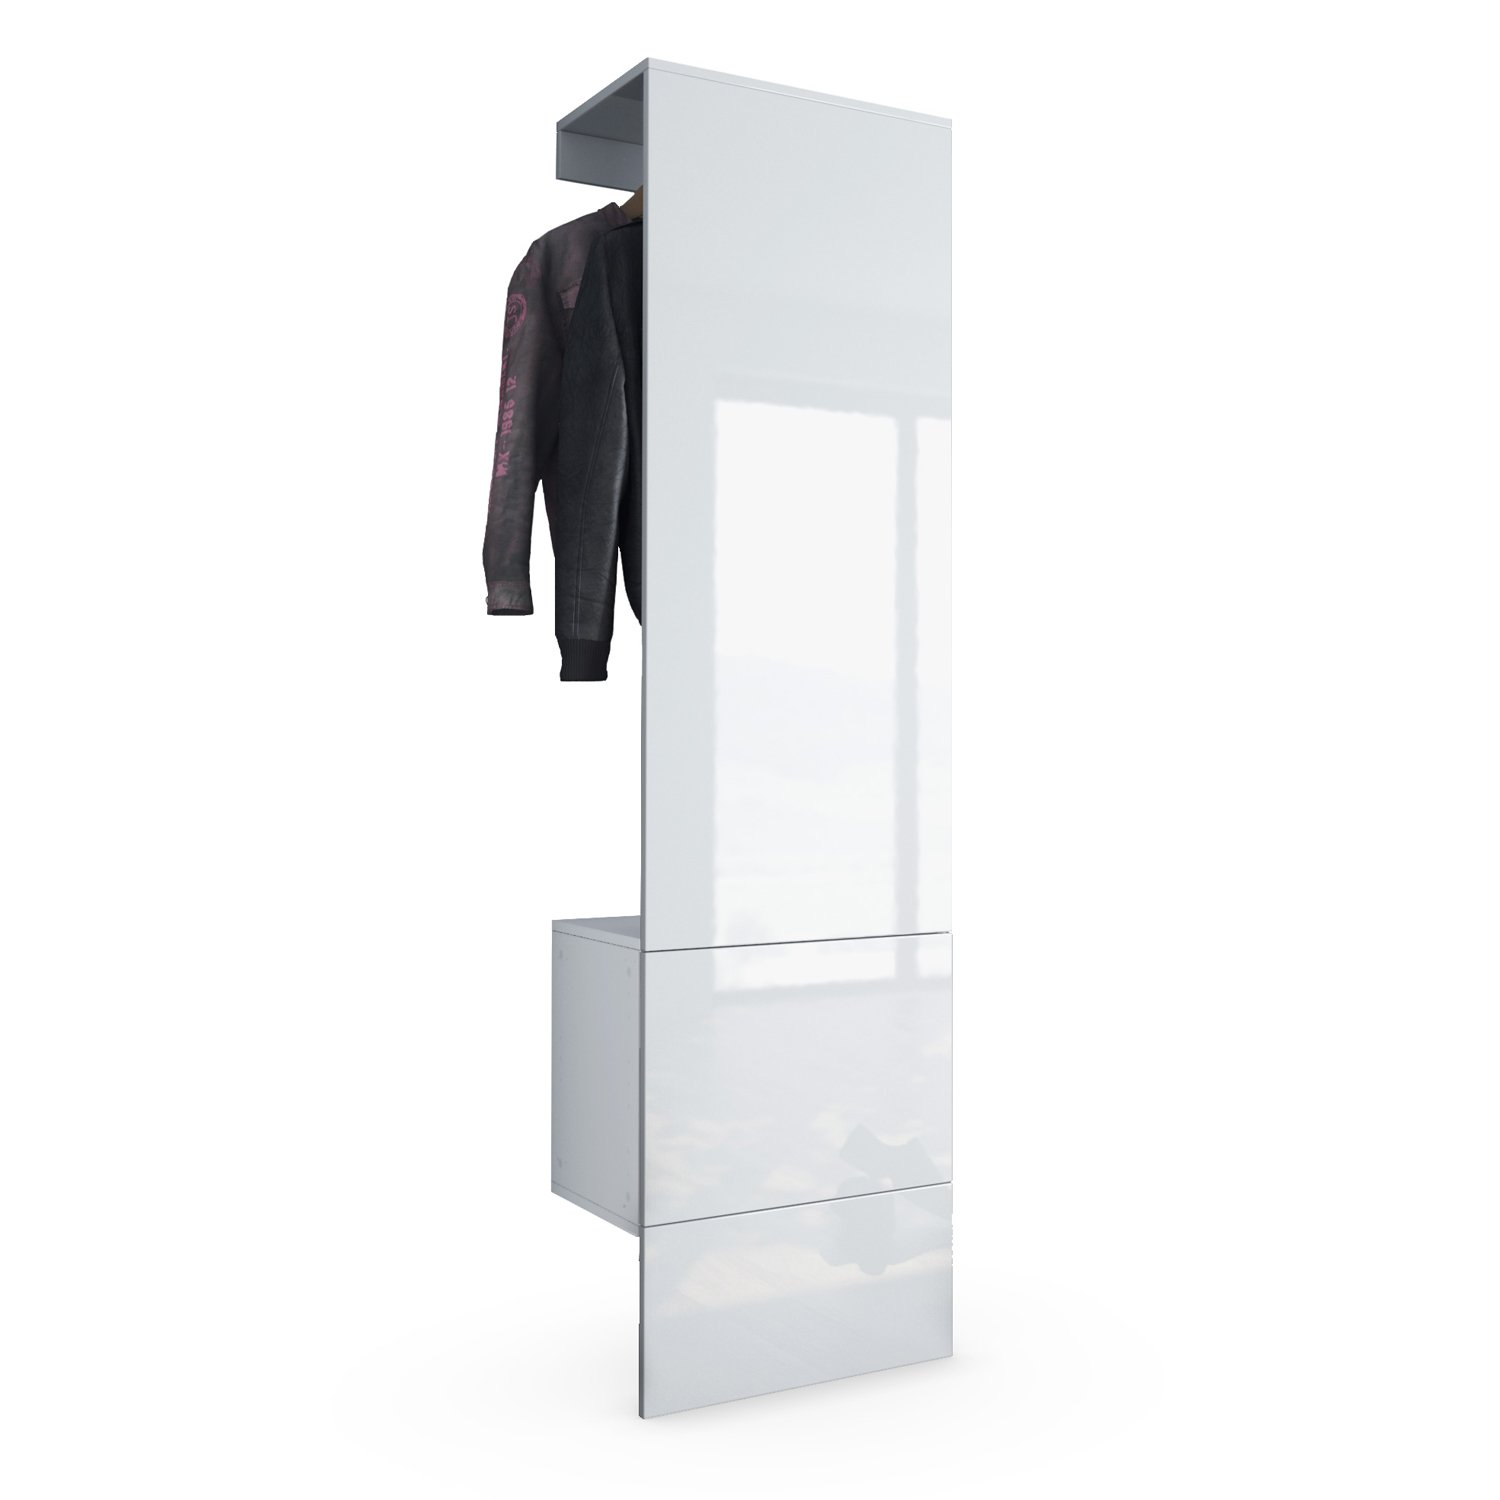 vladon wardrobe hallway furniture coat rack carlton set 5 carcass in white matt panel in white